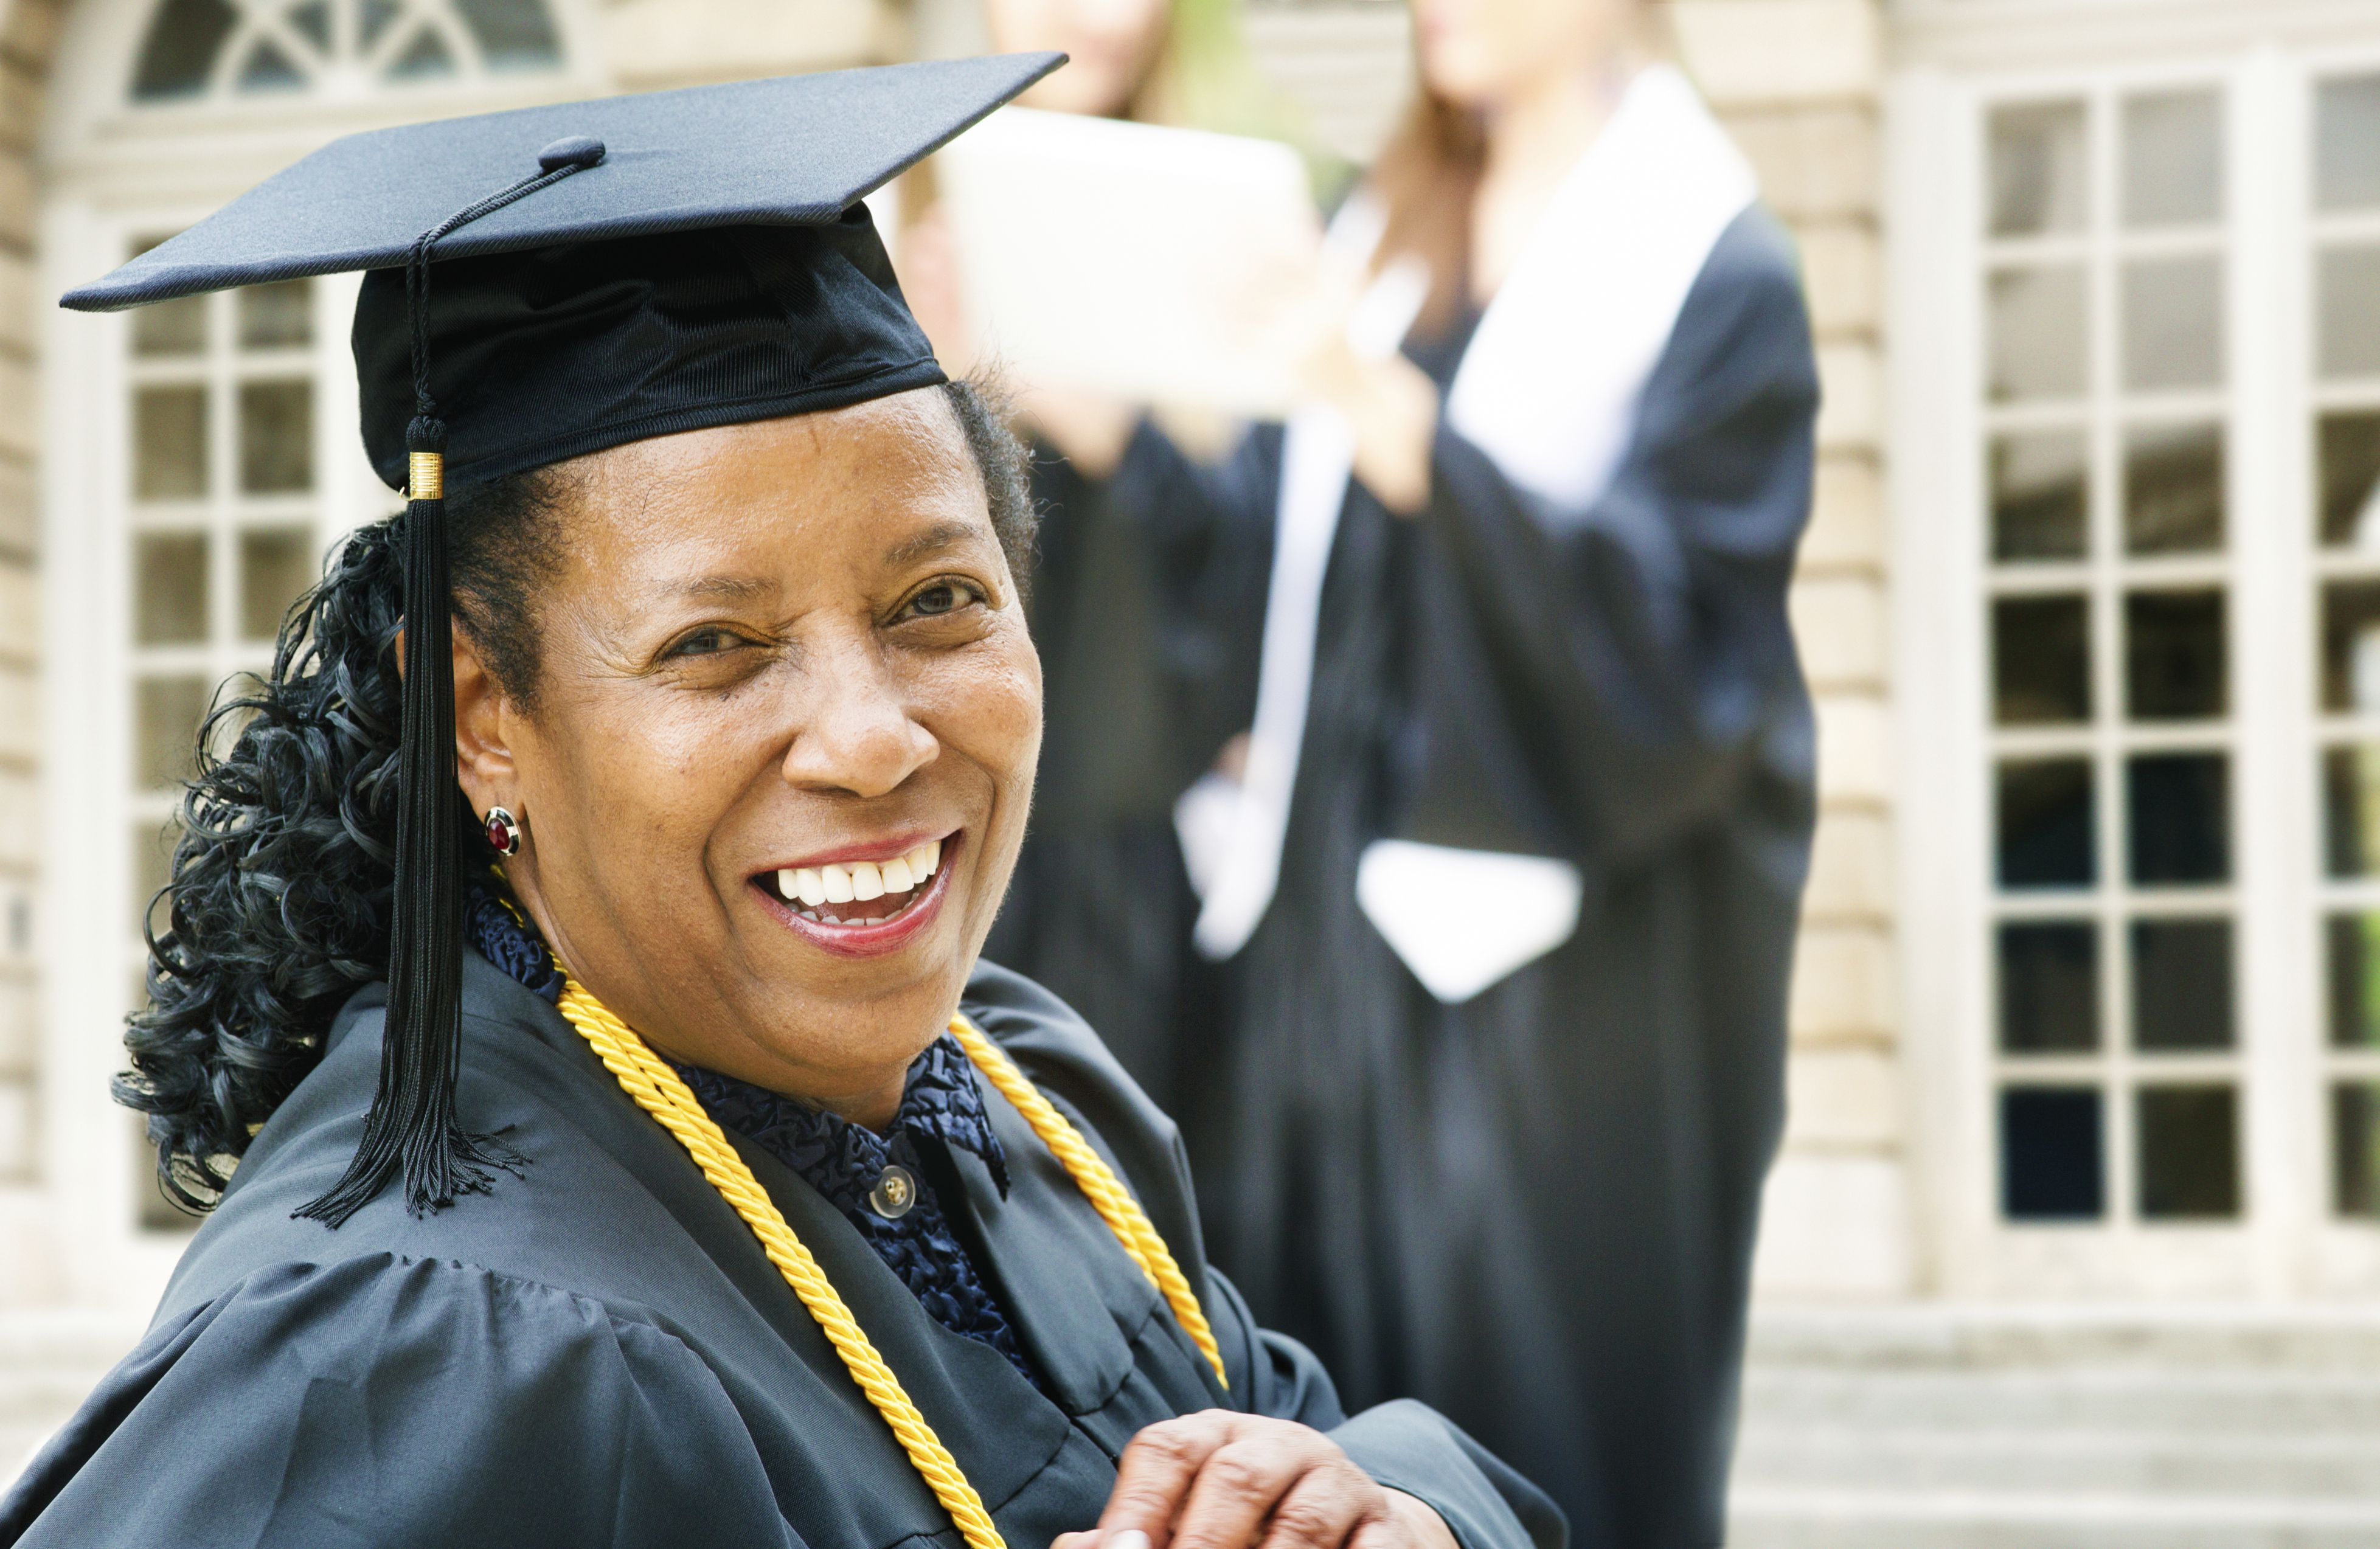 A doctoral degree affords new opportunities